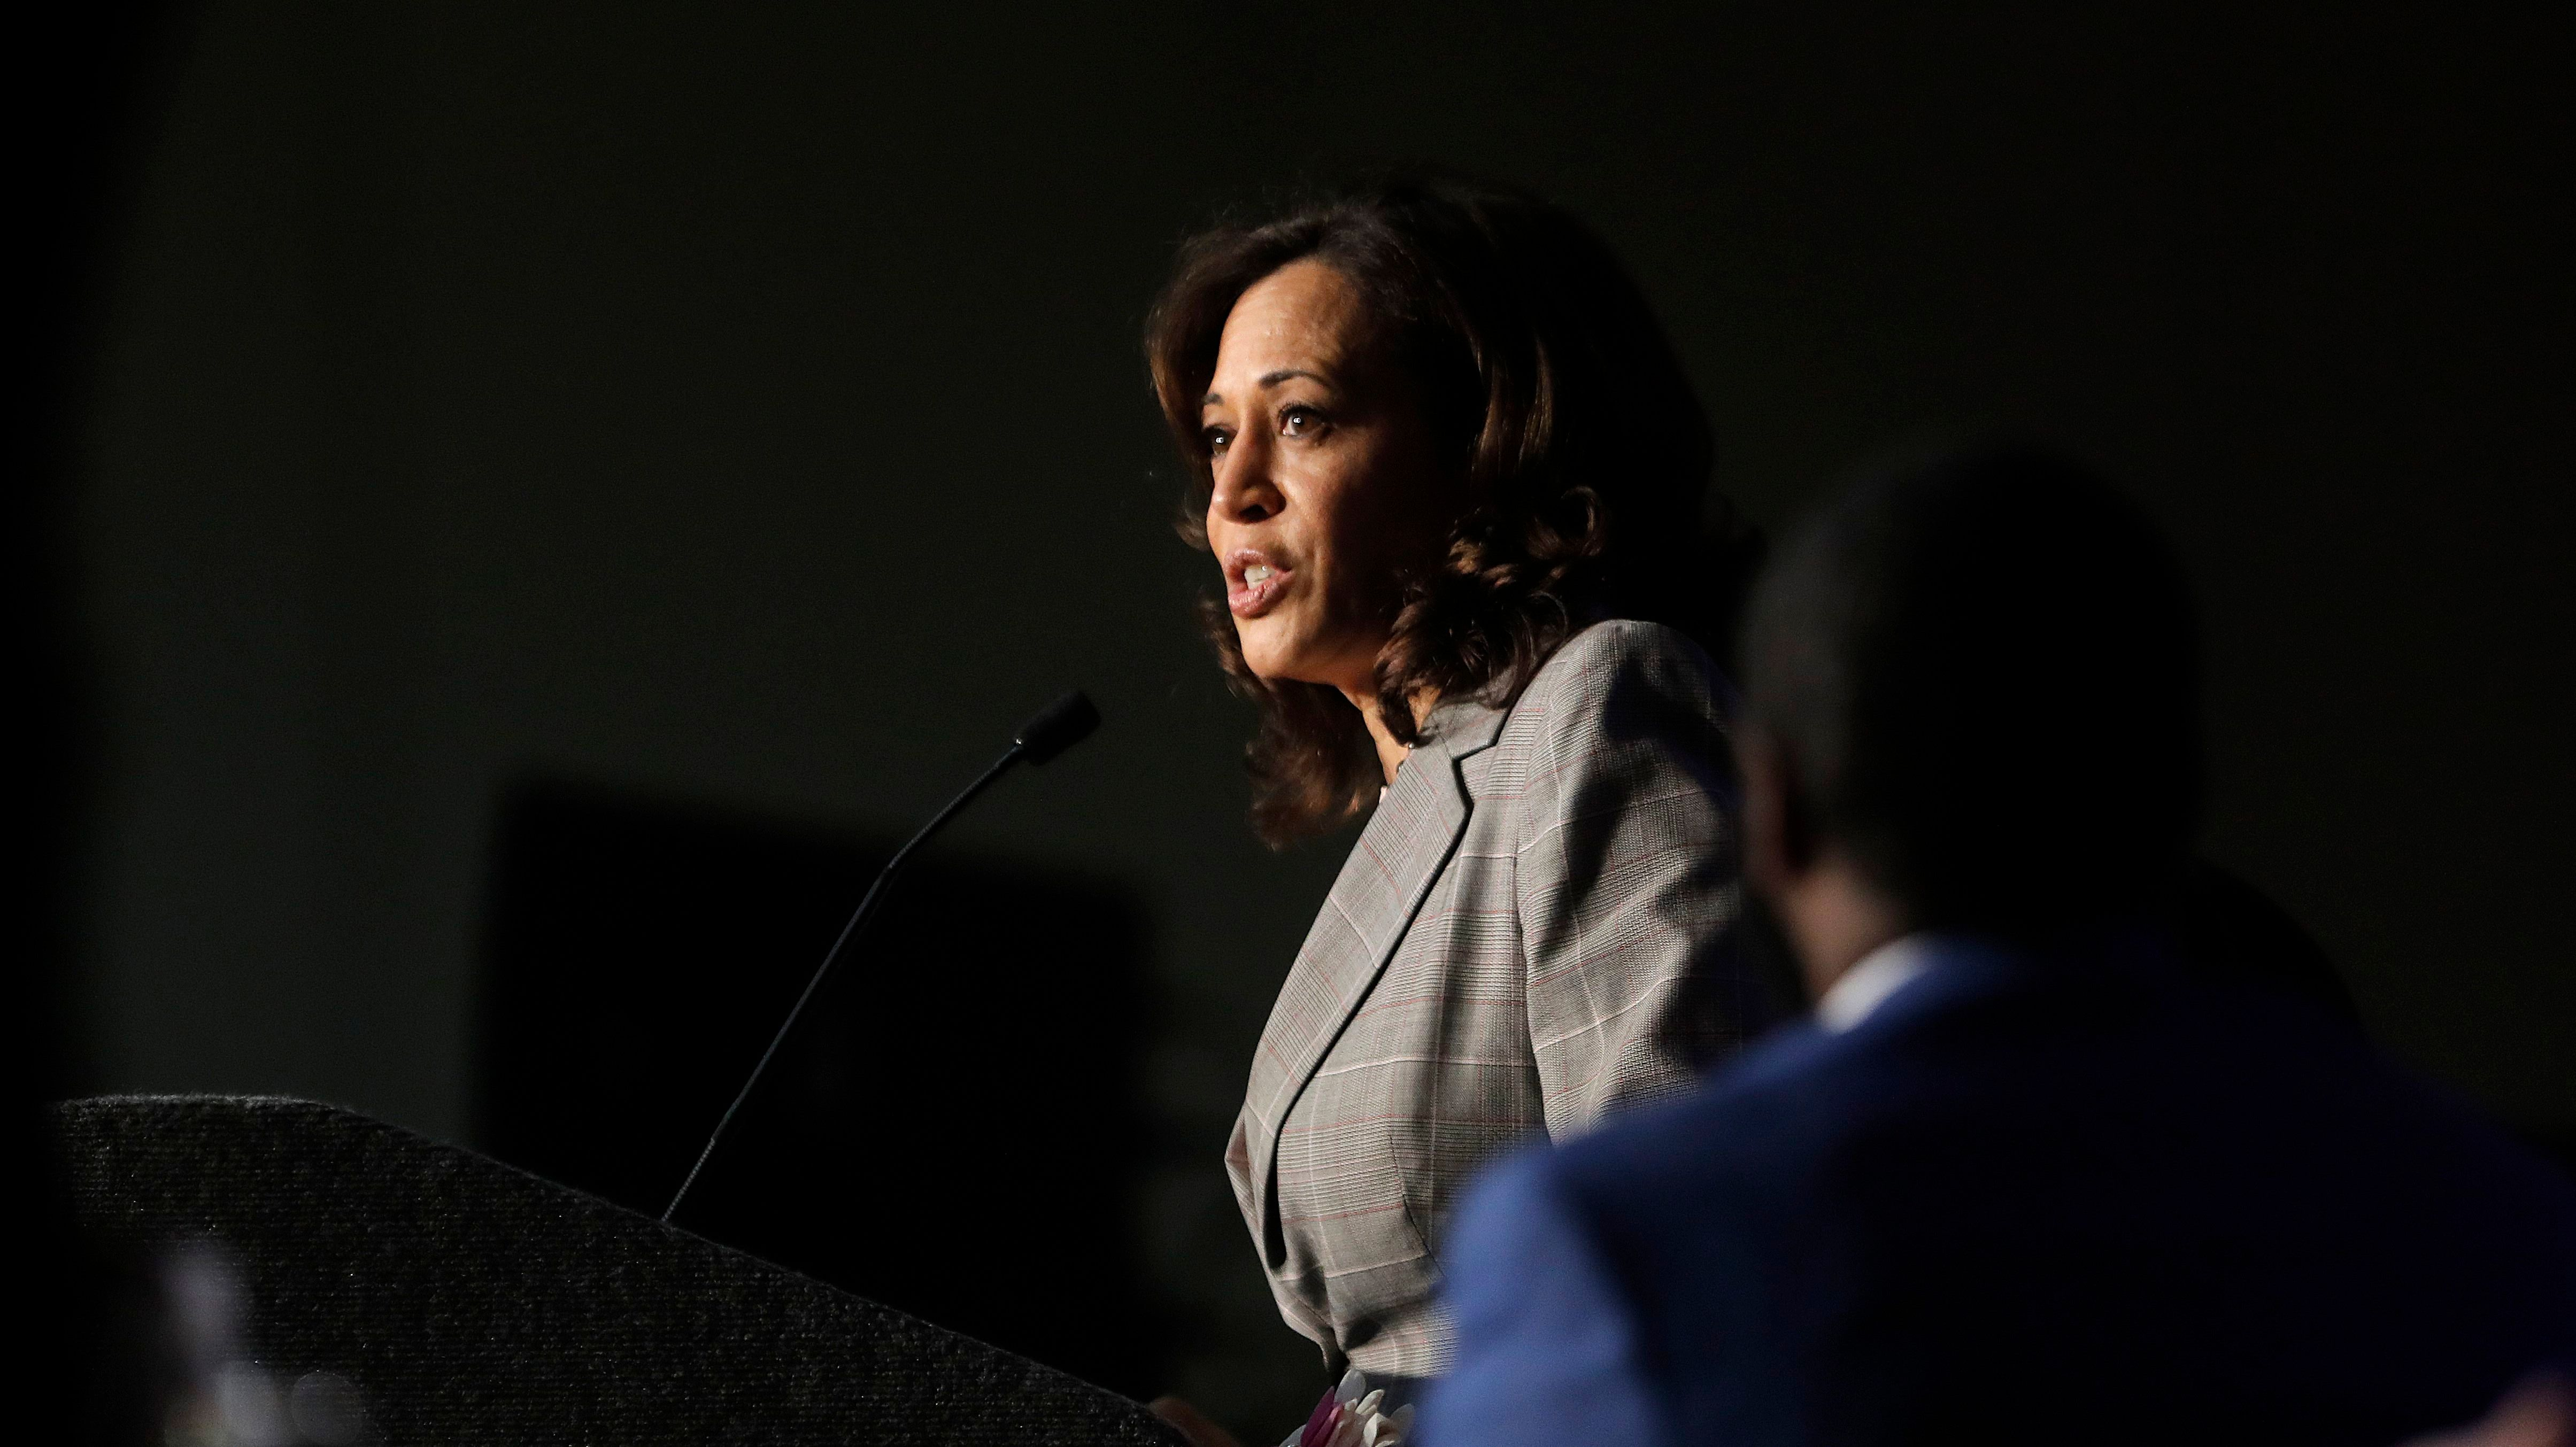 • Sen. Kamala Harris's unexpected support for impeachment follows Sen. Elizabeth Warren's push following the release of Mueller's redacted report. • On Monday 5 leading 2020 Dem contenders clashed in a series of prime-time town hall meetings.